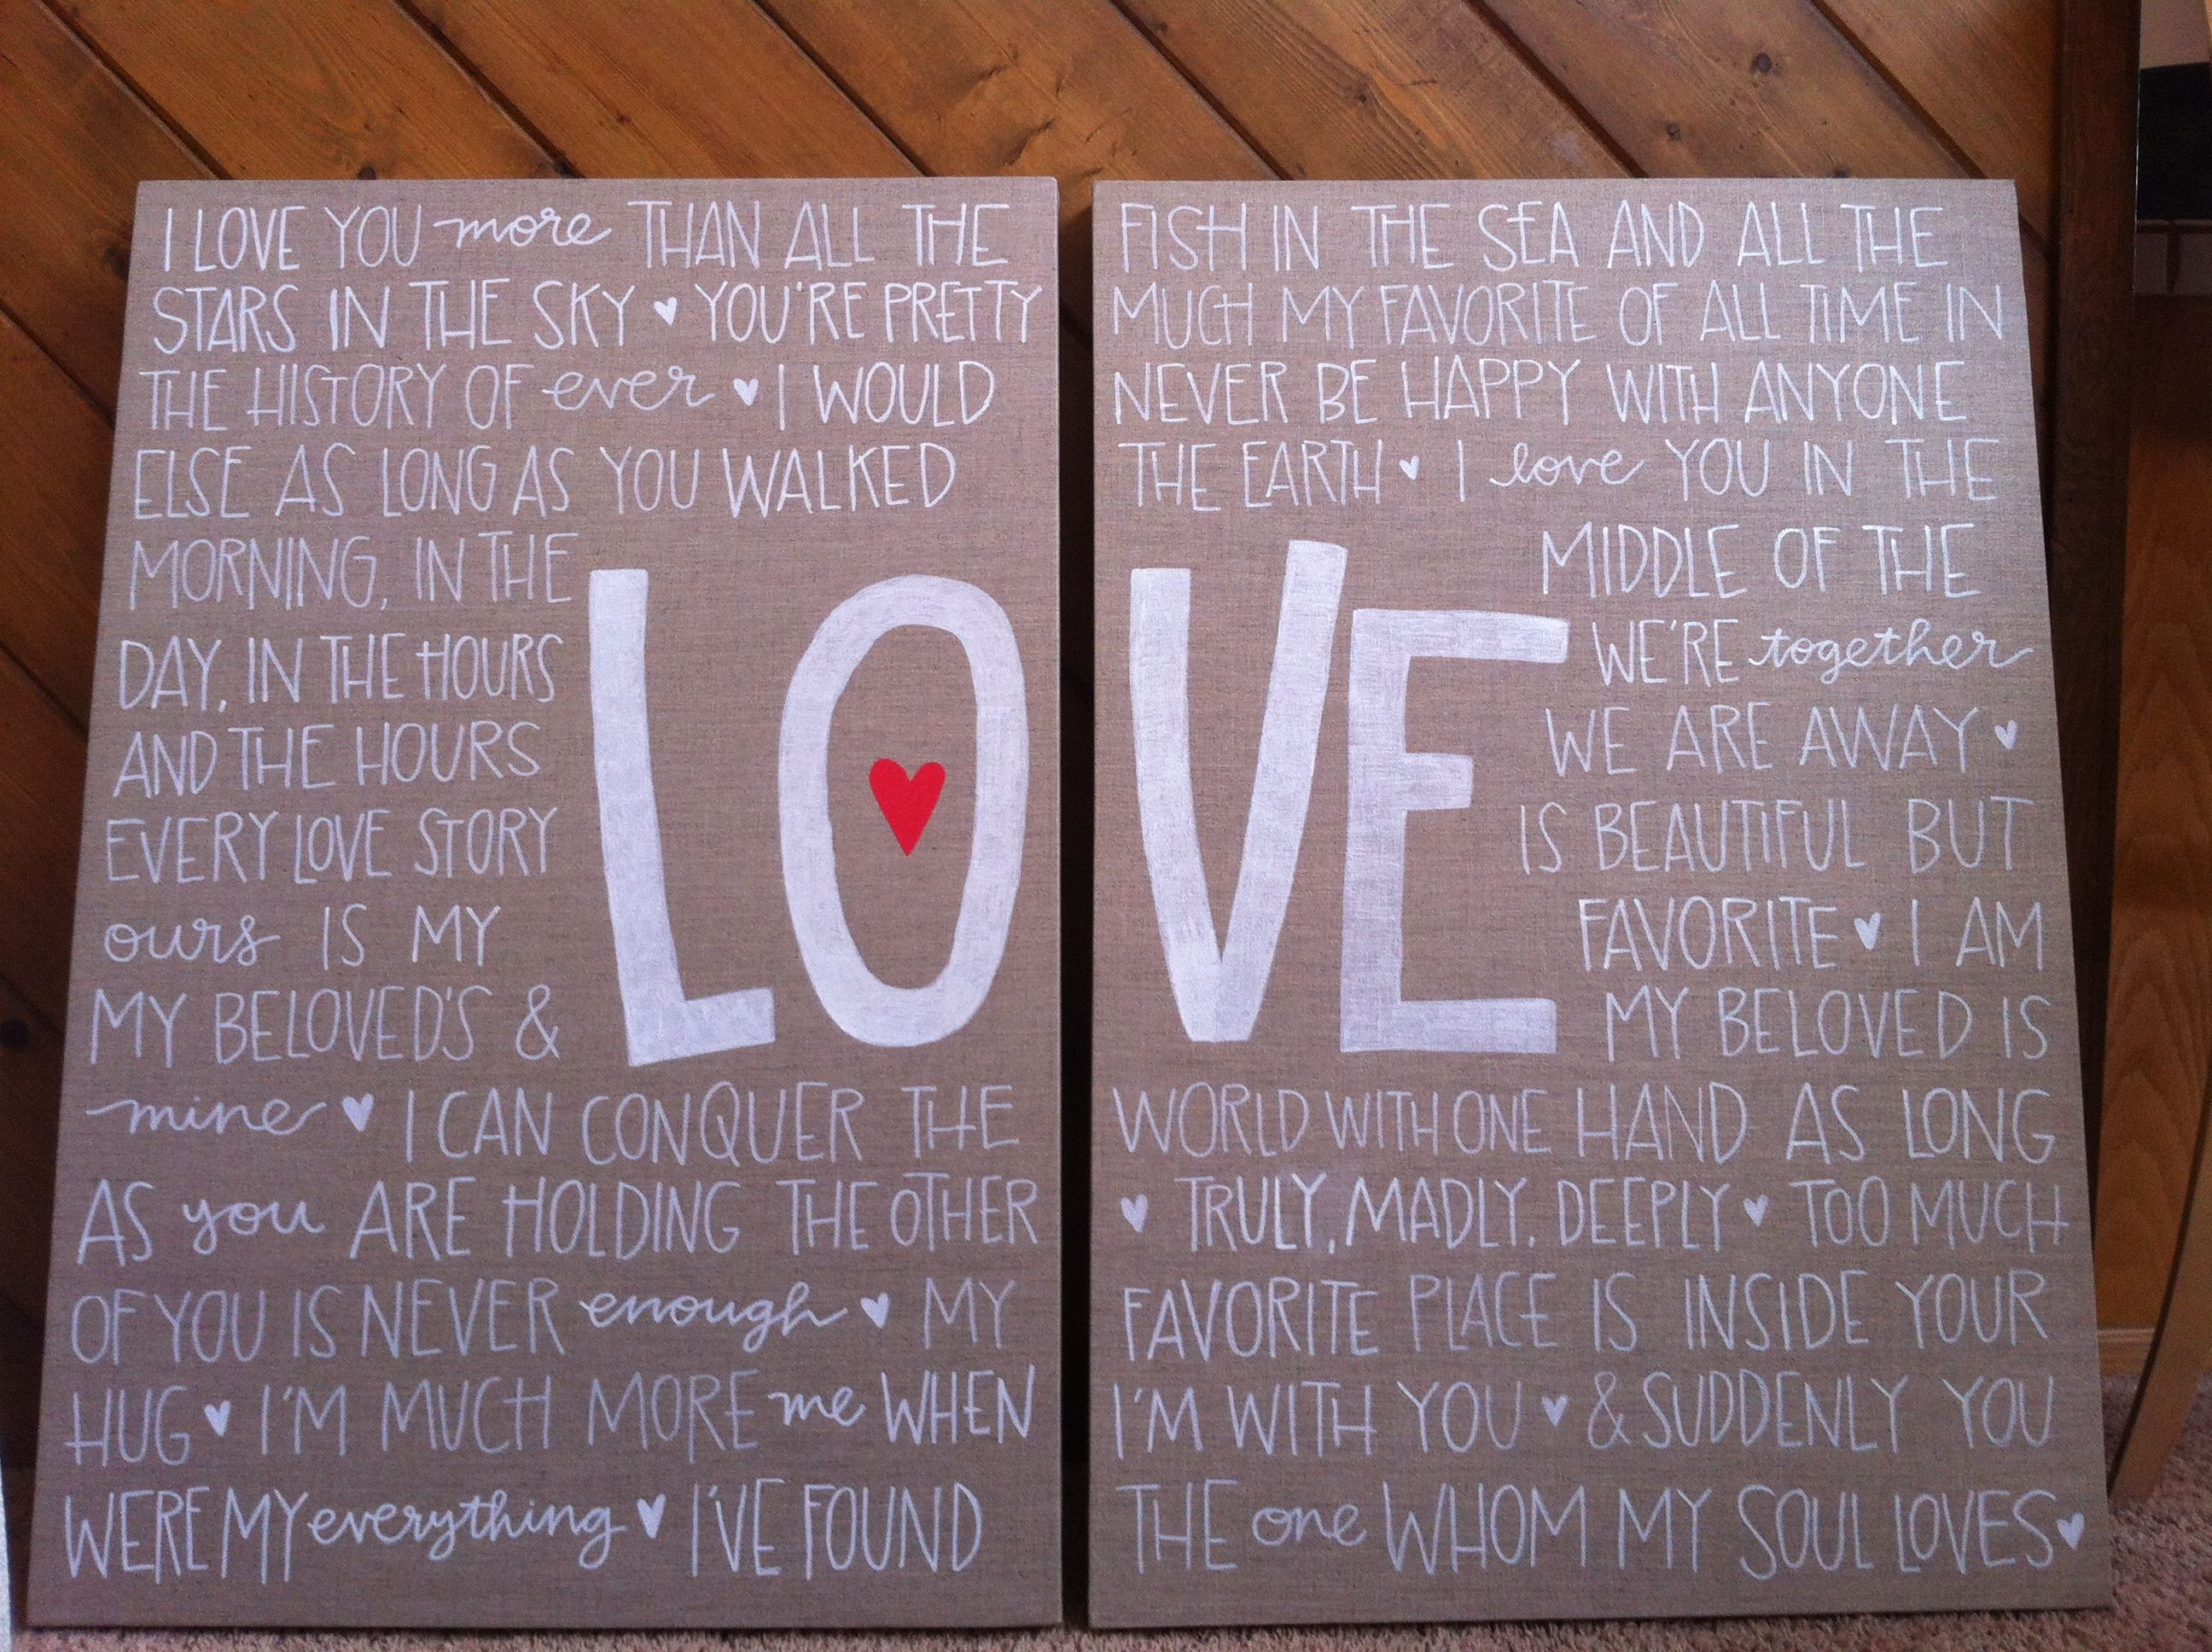 Love Quotes On Canvas Entrancing Love Quotes On Canvas  Google Search  Quotes  Pinterest  Wood